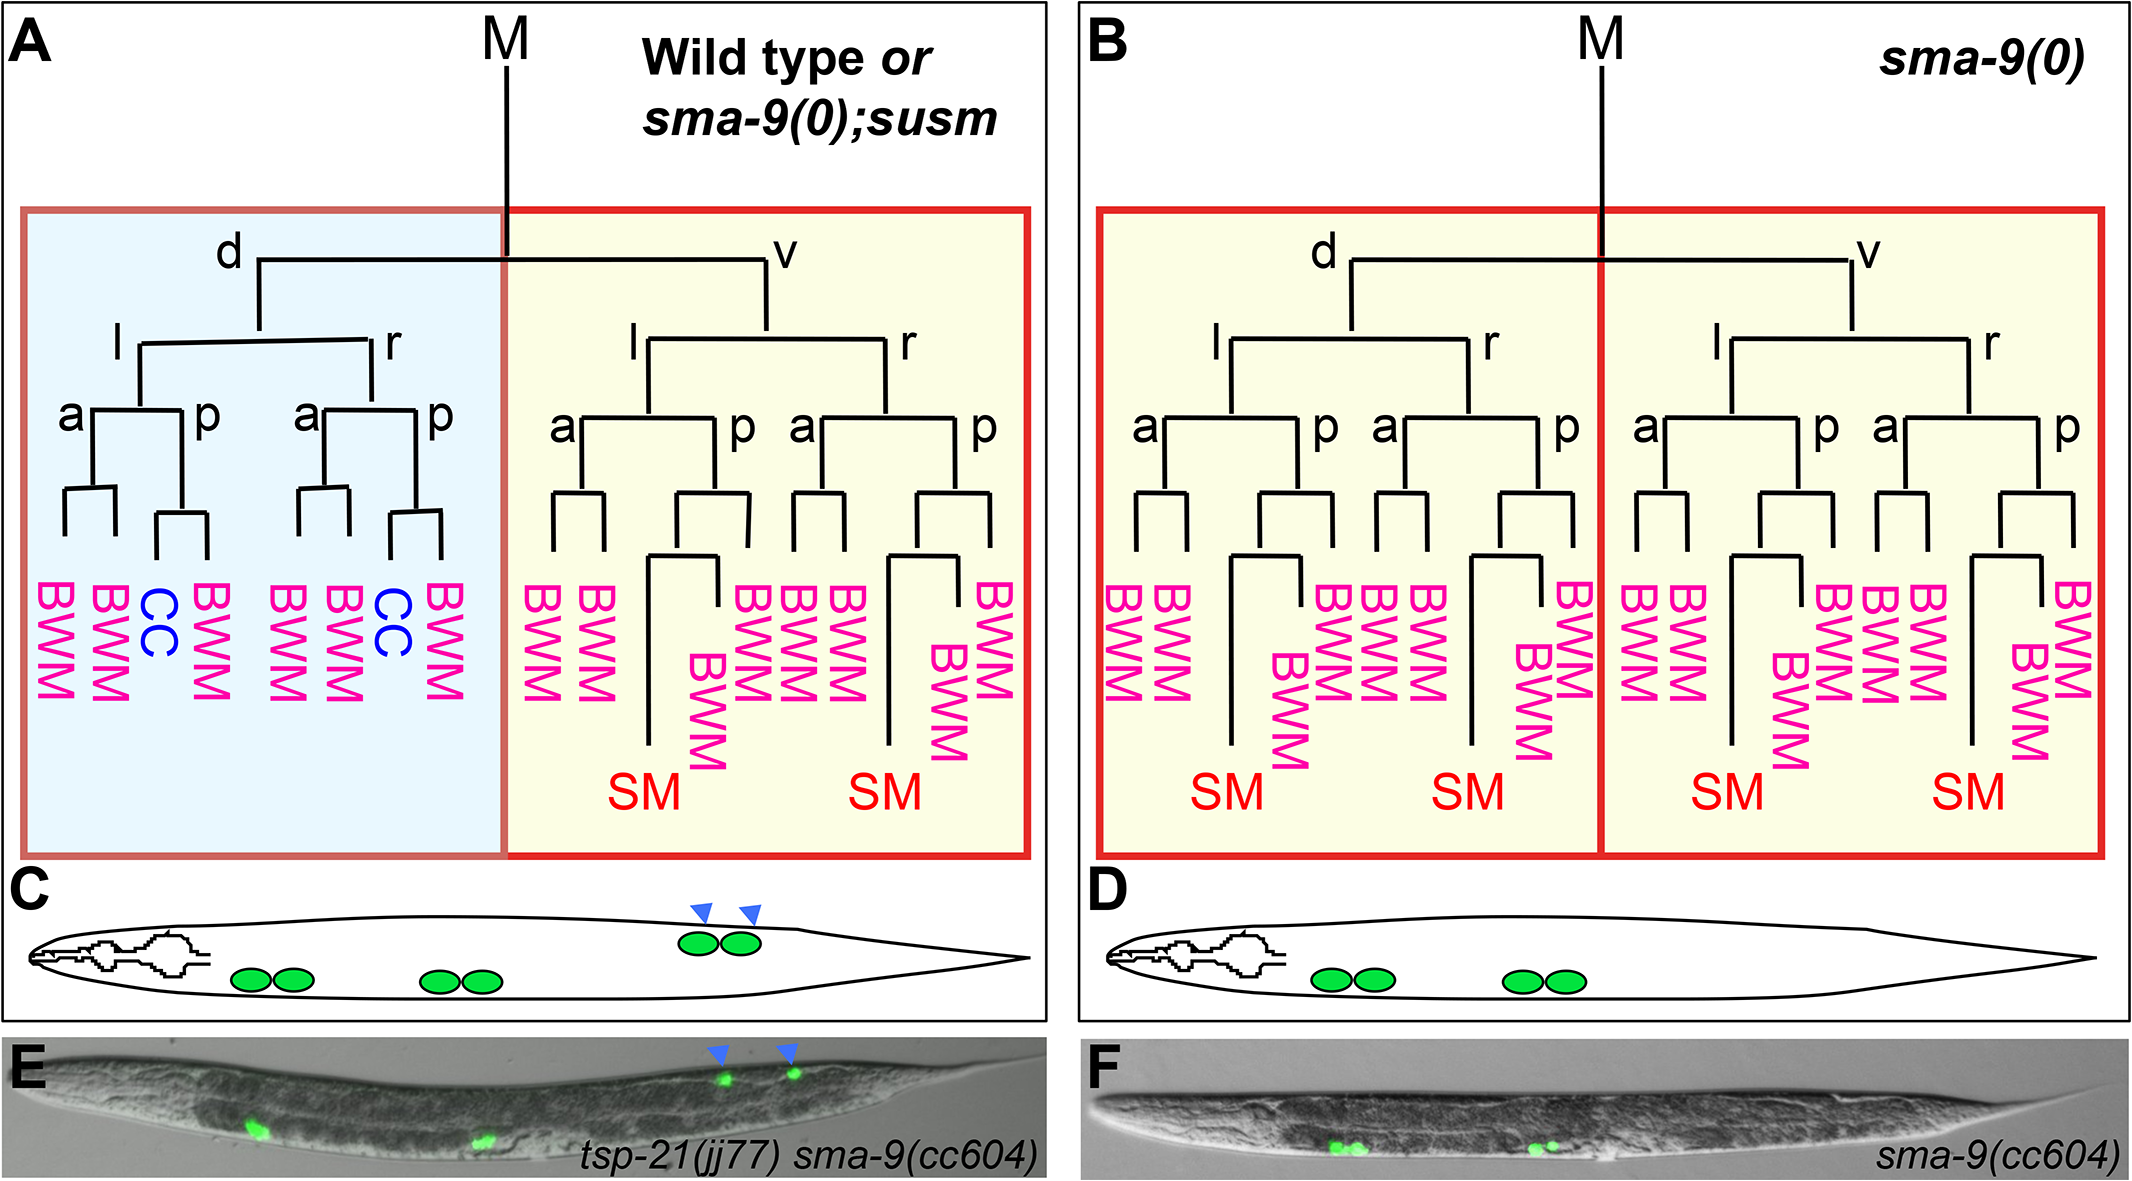 The <i>sma-9(0)</i> suppressor mutations revert the M lineage dorsal-to-ventral fate transformation defect in <i>sma-9(0)</i> mutants to the wild-type pattern.